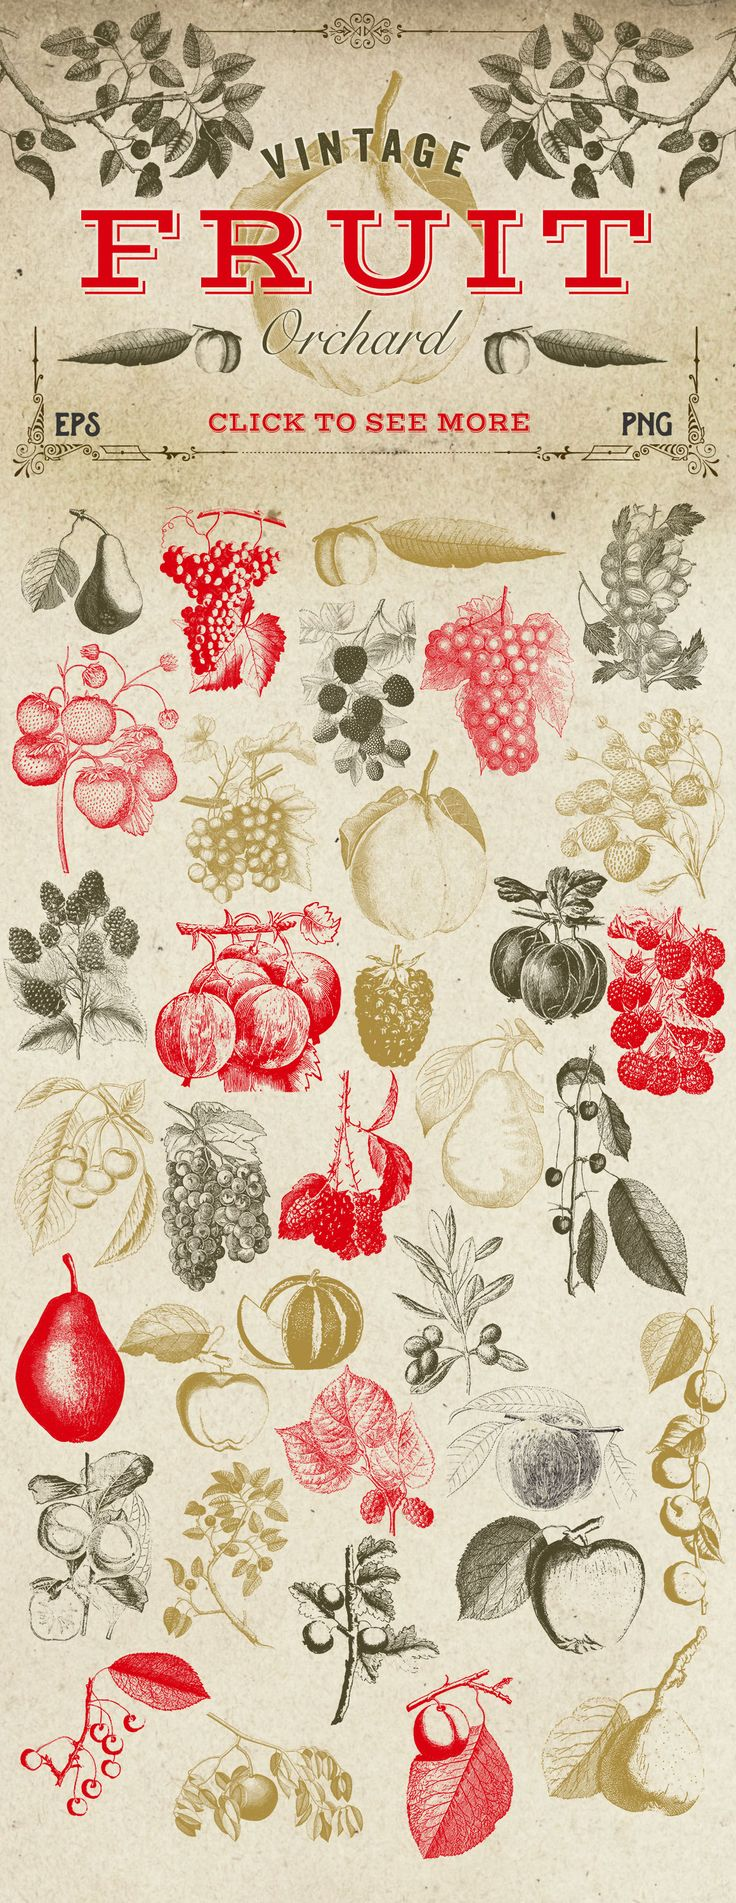 Vintage Fruit Vector Graphics by Eclectic Anthology on Creative Market